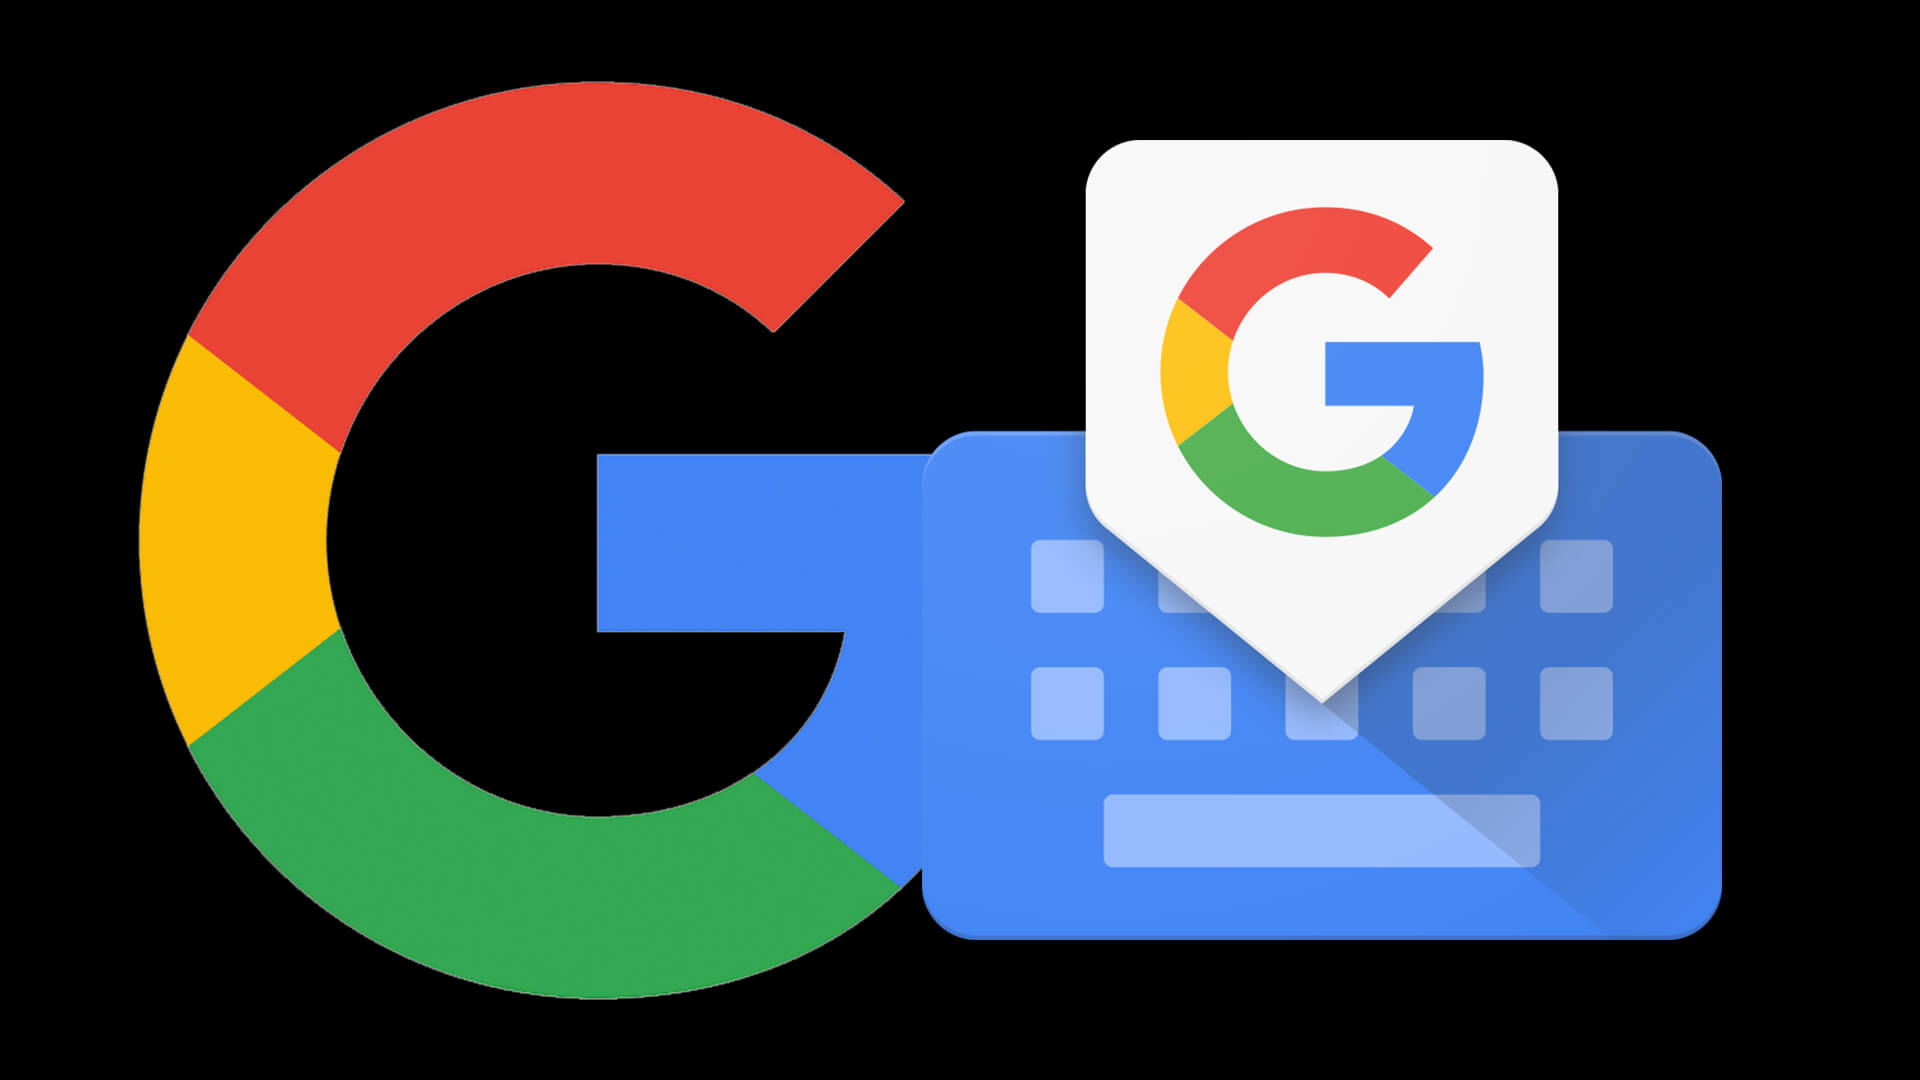 Google Launches Gboard Keyboard Features On Android